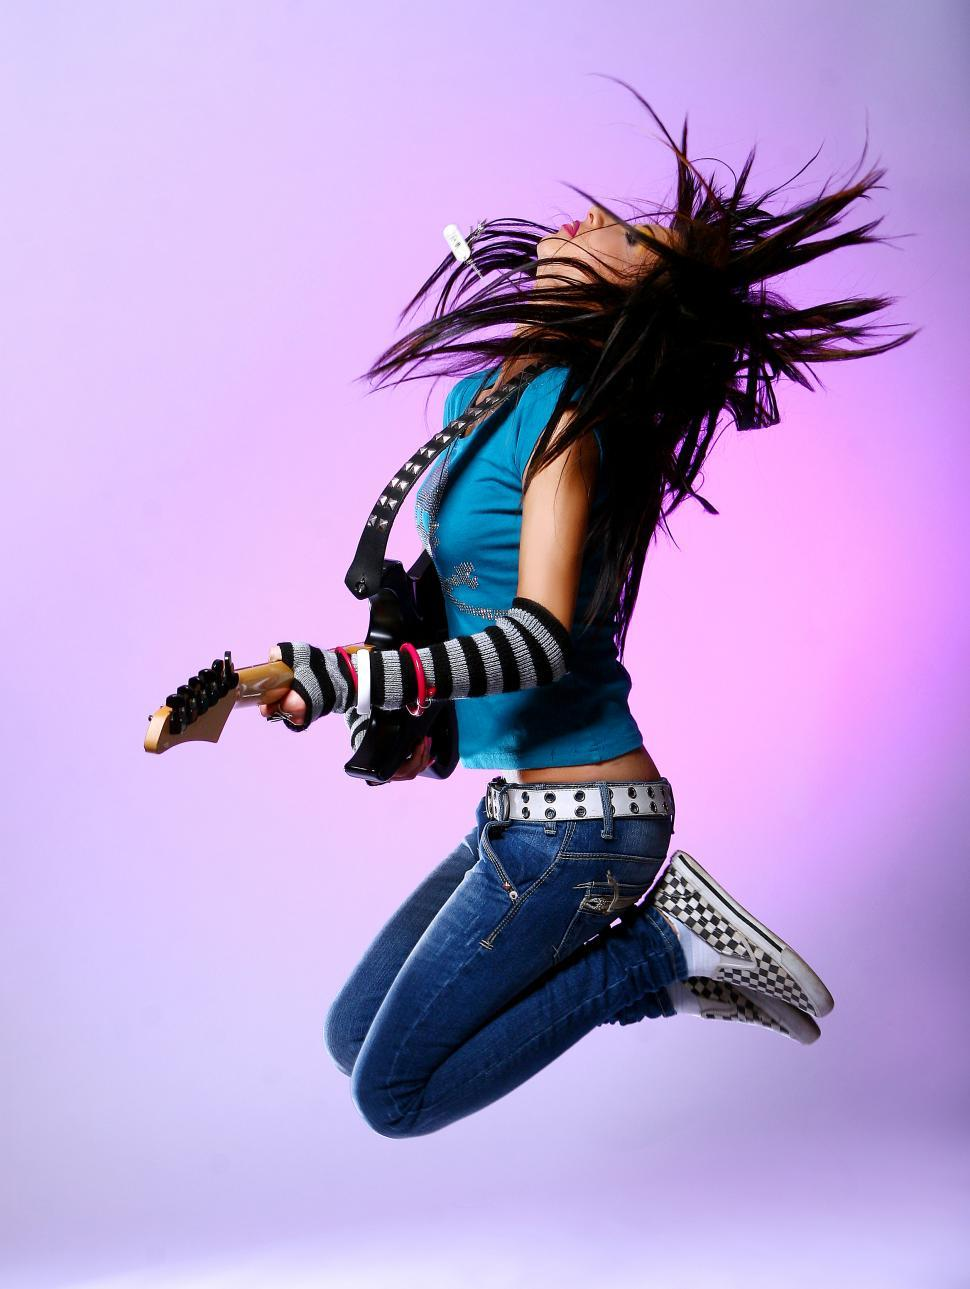 Download Free Stock Photo of woman jumping in air with guitar